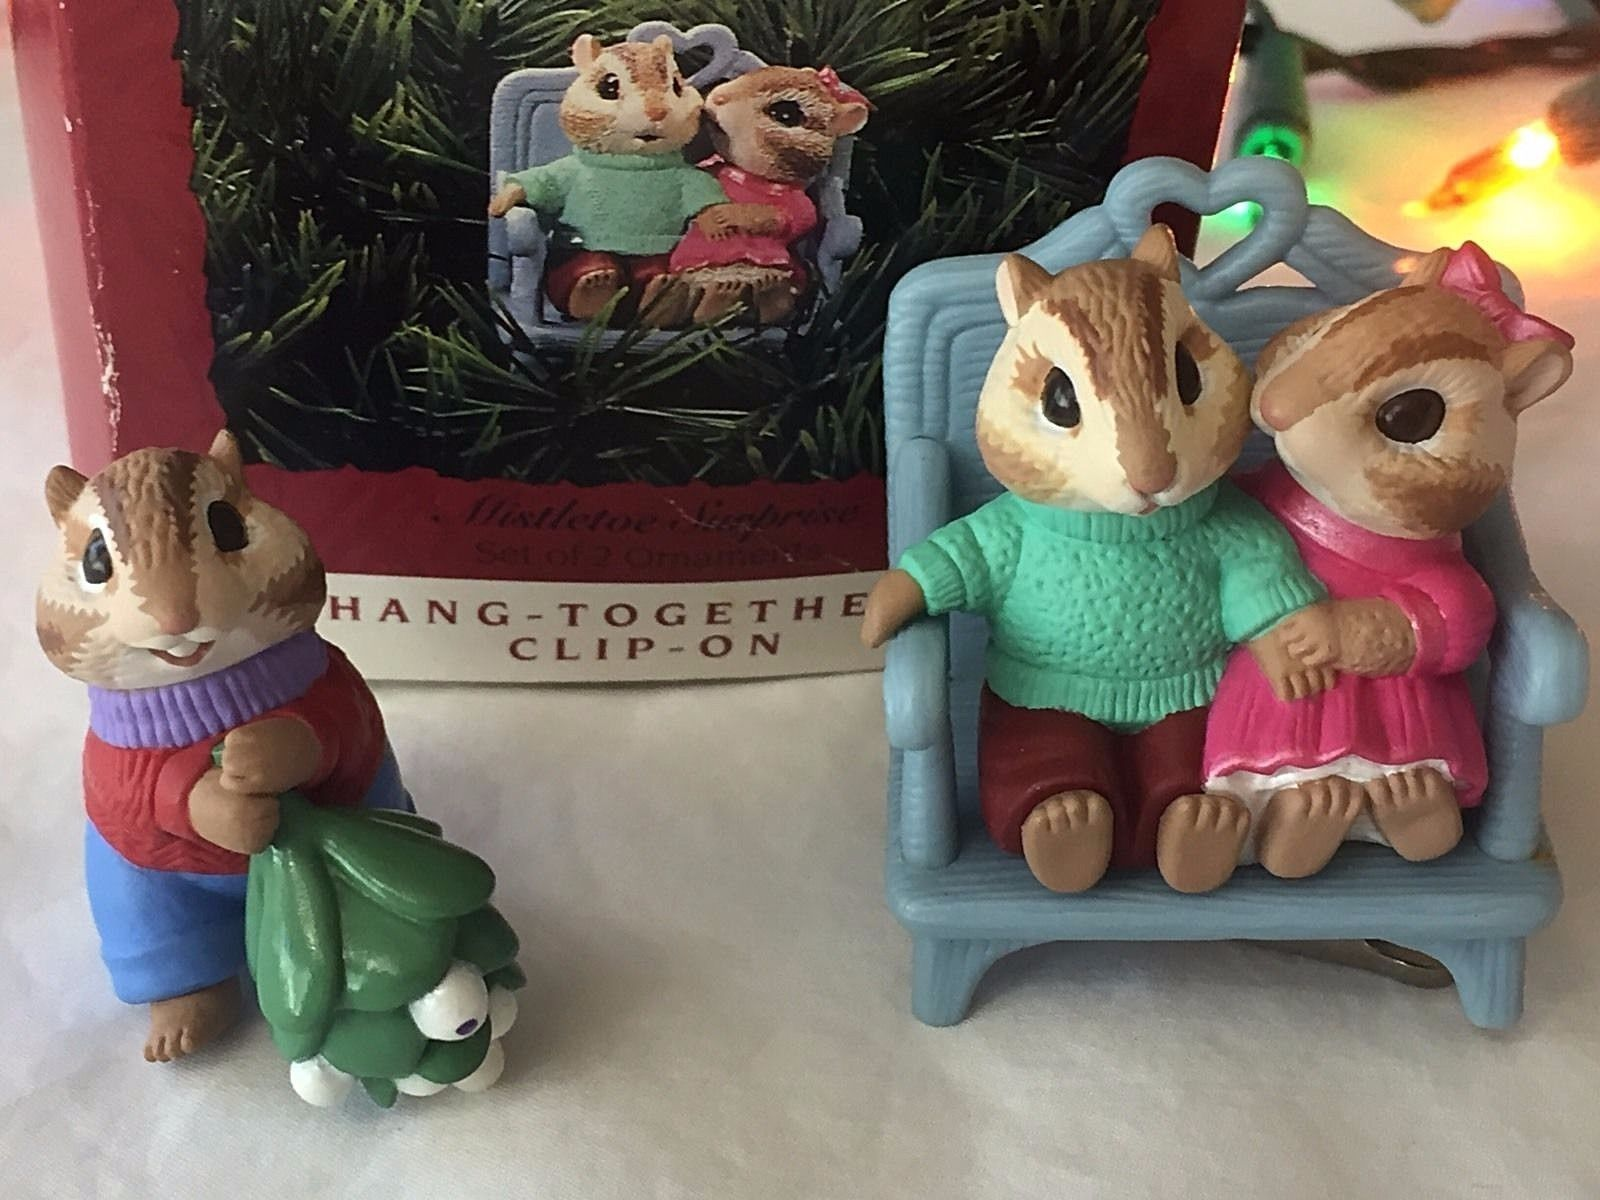 Mistletoe Surprise Hallmark Keepsake Christmas Ornament Set 2 Chipmunks Clip On